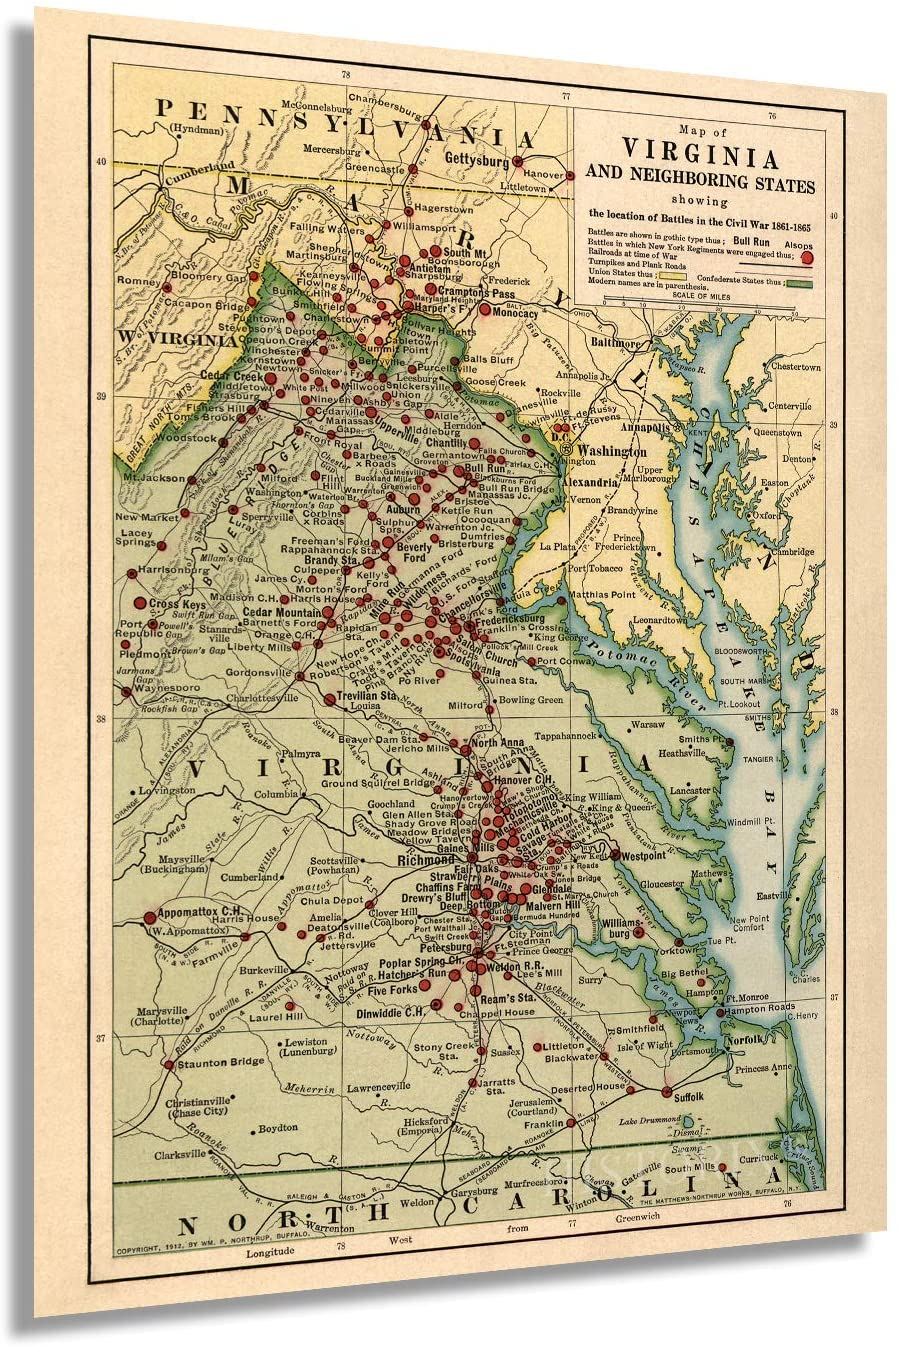 1912 Map of Virginia in the Civil War